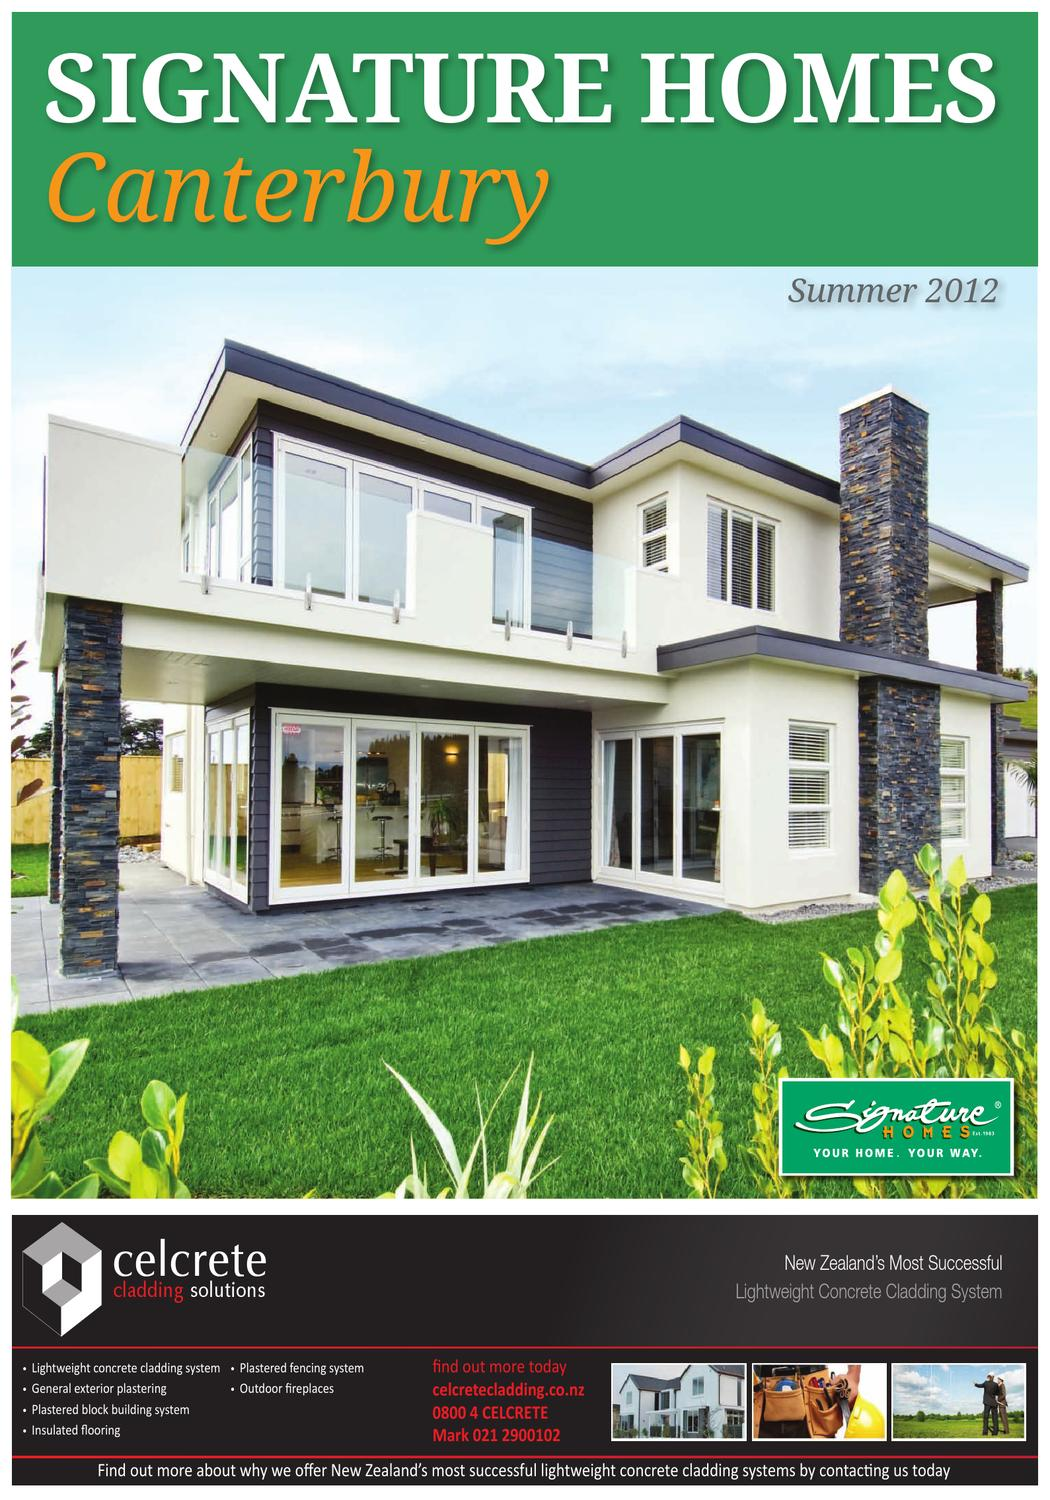 Signature homes by waterford press limited issuu for Home signature